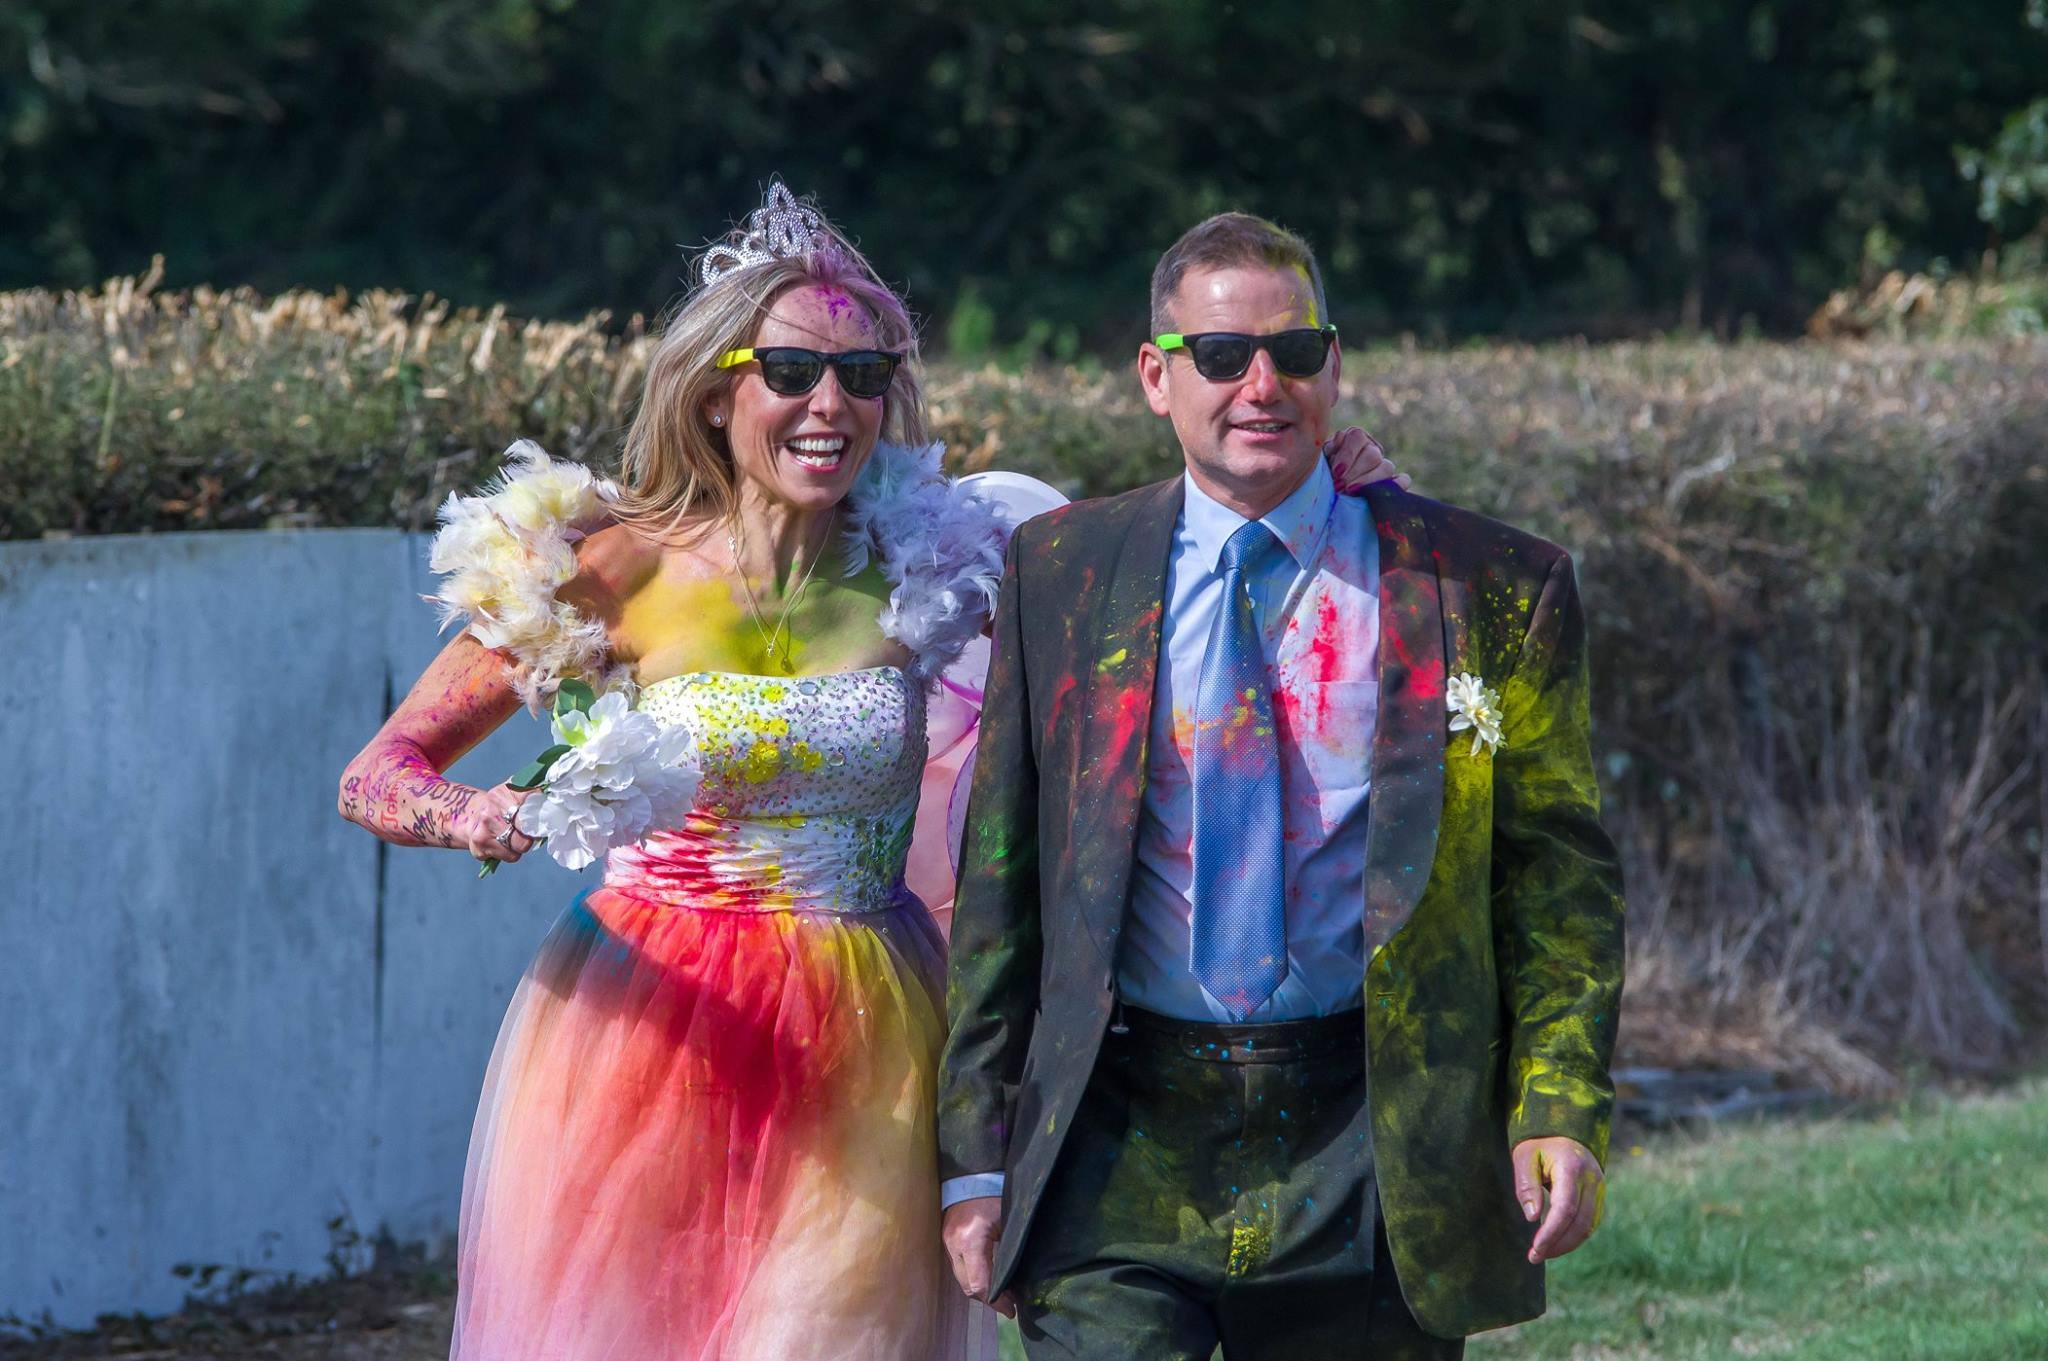 Michelle and John taking part in the Age UK colour run the day after their wedding. Credit: Michelle Walton